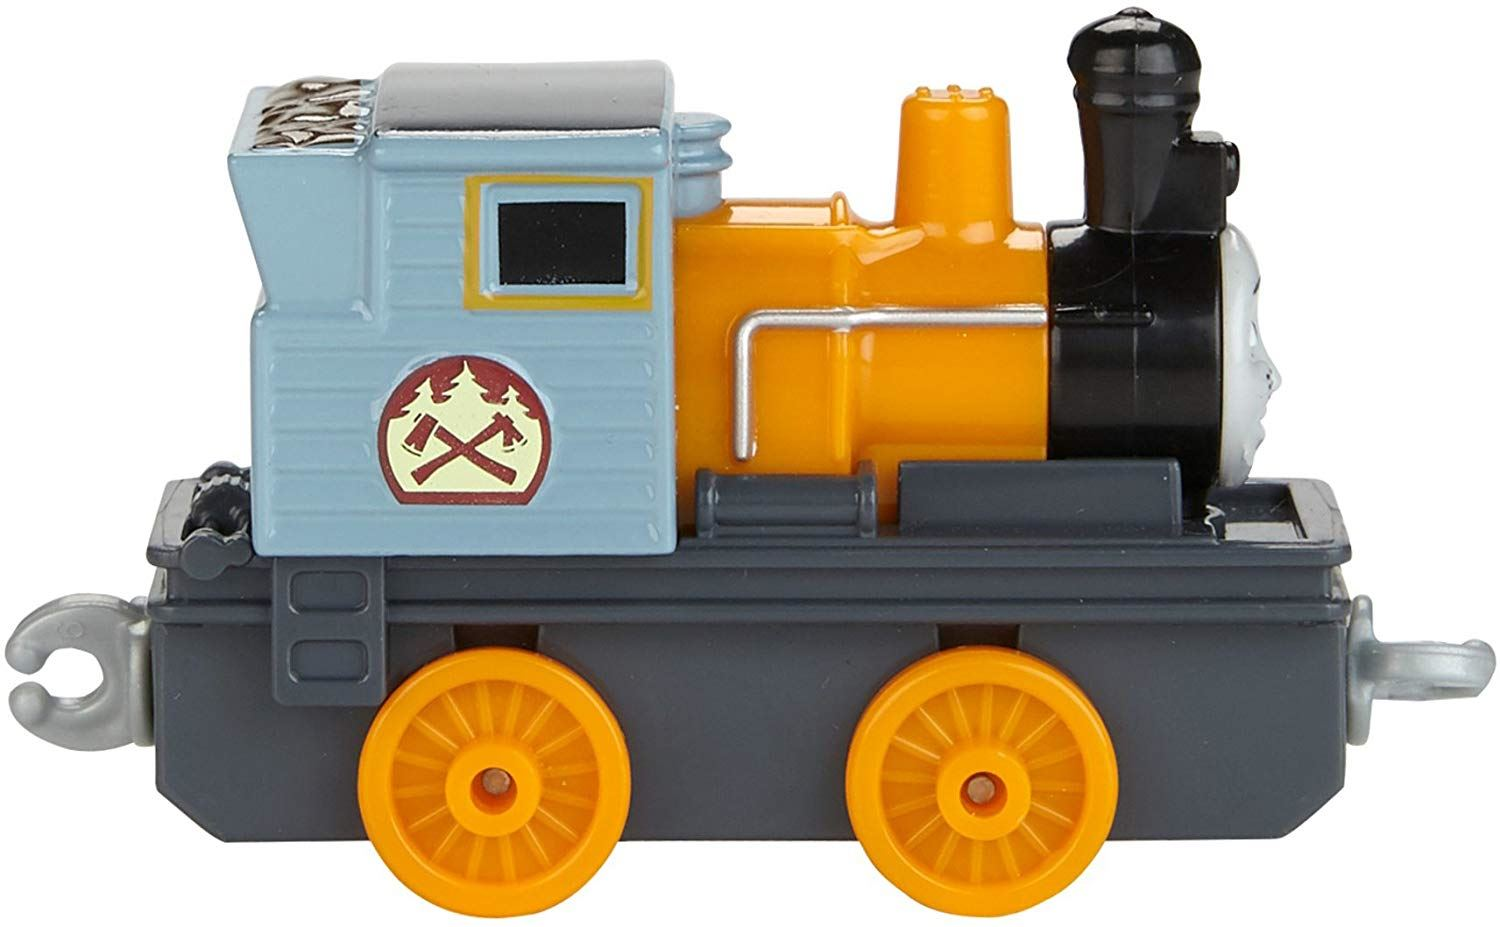 Thomas-amp-Friends-Adventures-Ferdinand-lexi-Shane-Dash-Huge-Bill-Trains Indexbild 9